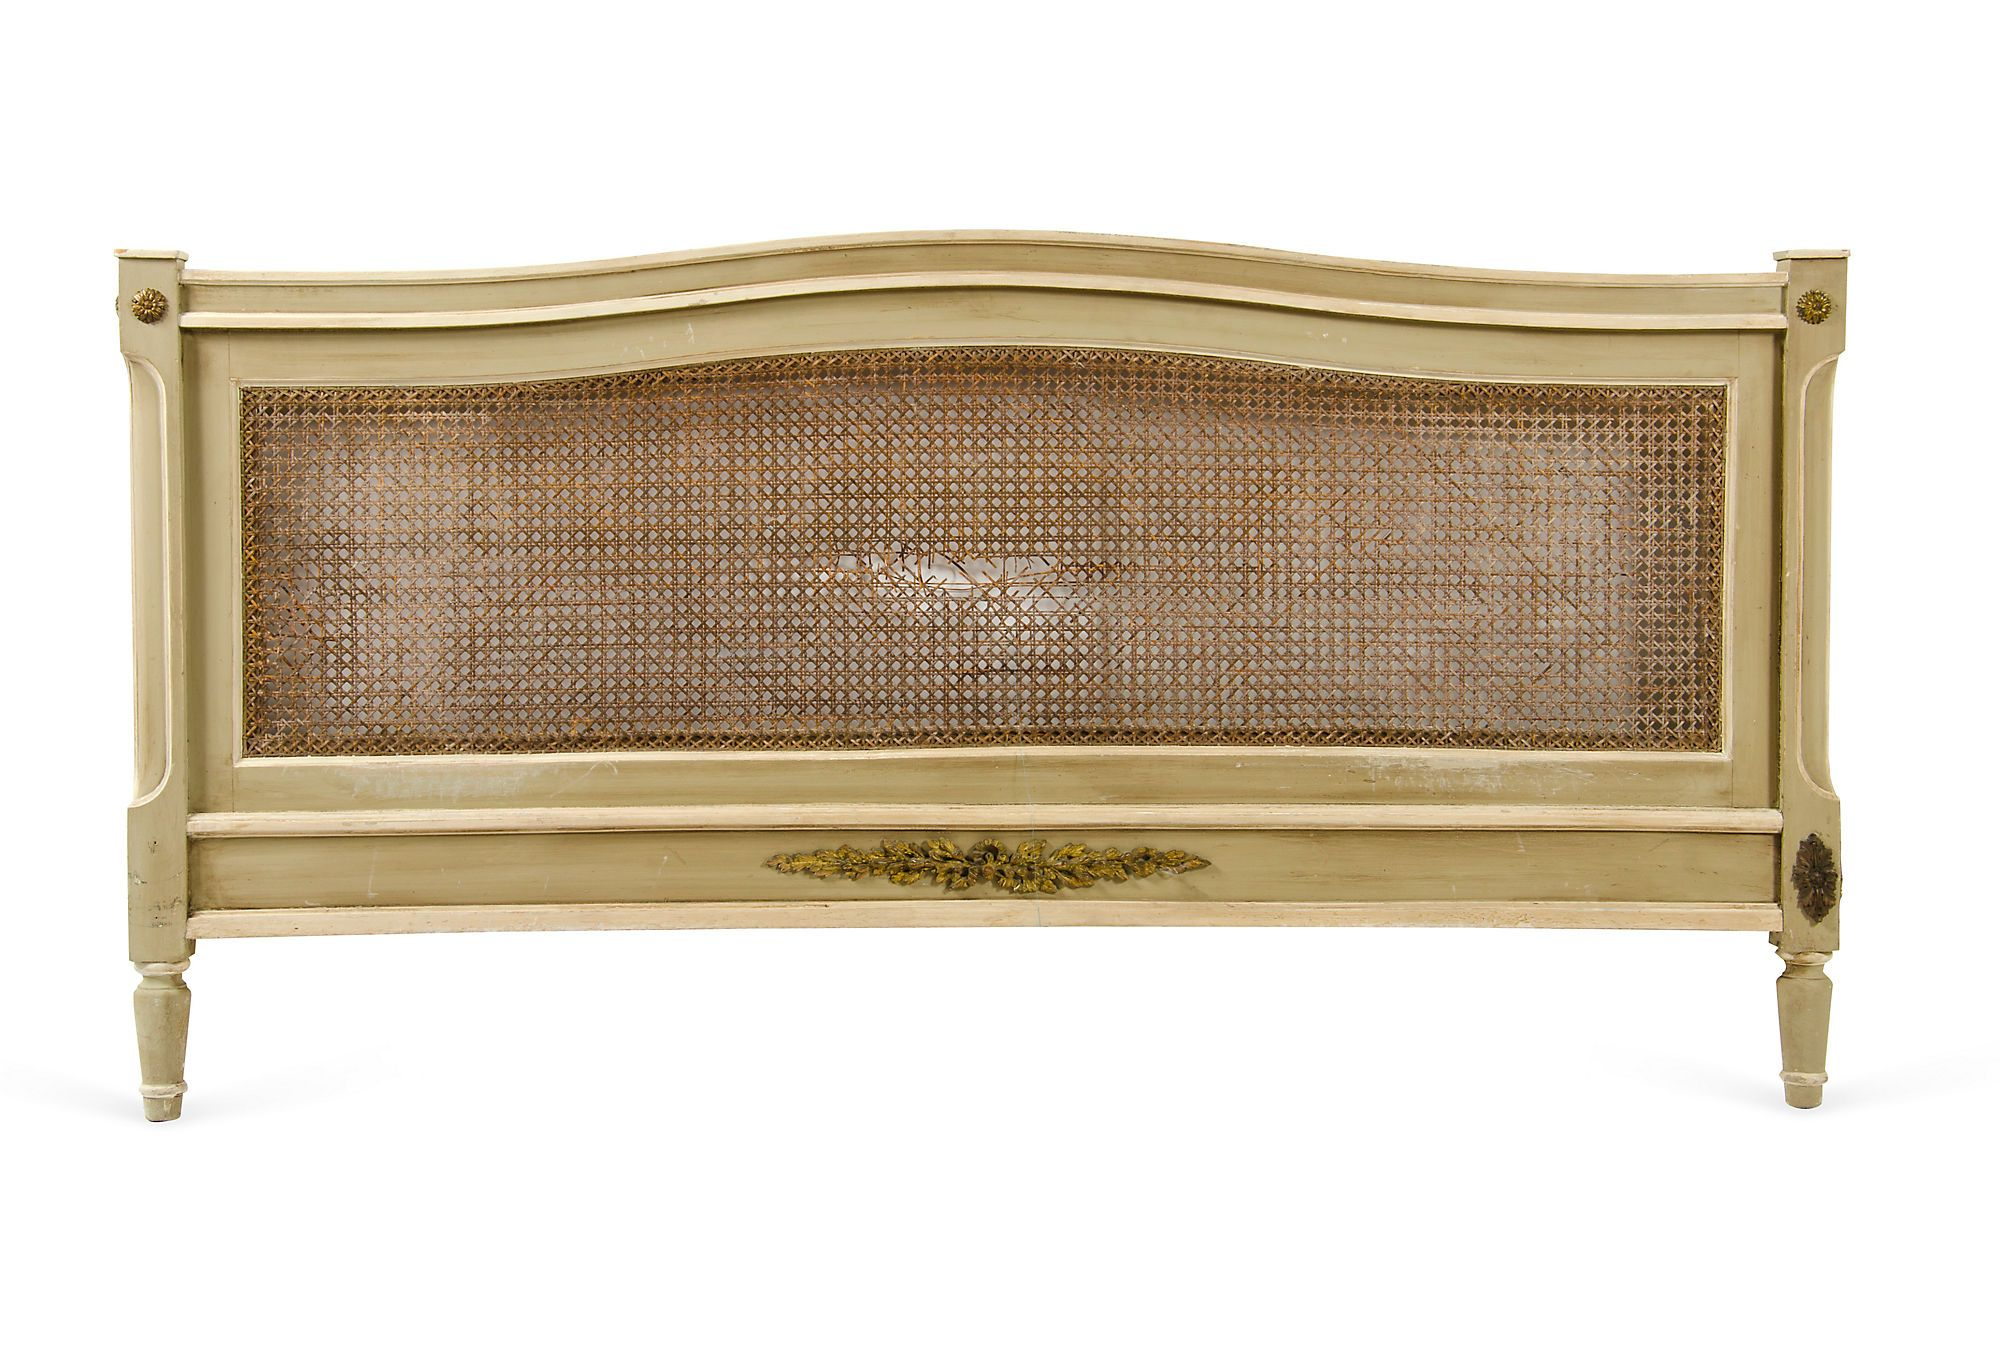 One Kings Lane - This Week's Vintage Mix - Cane Bed, Full